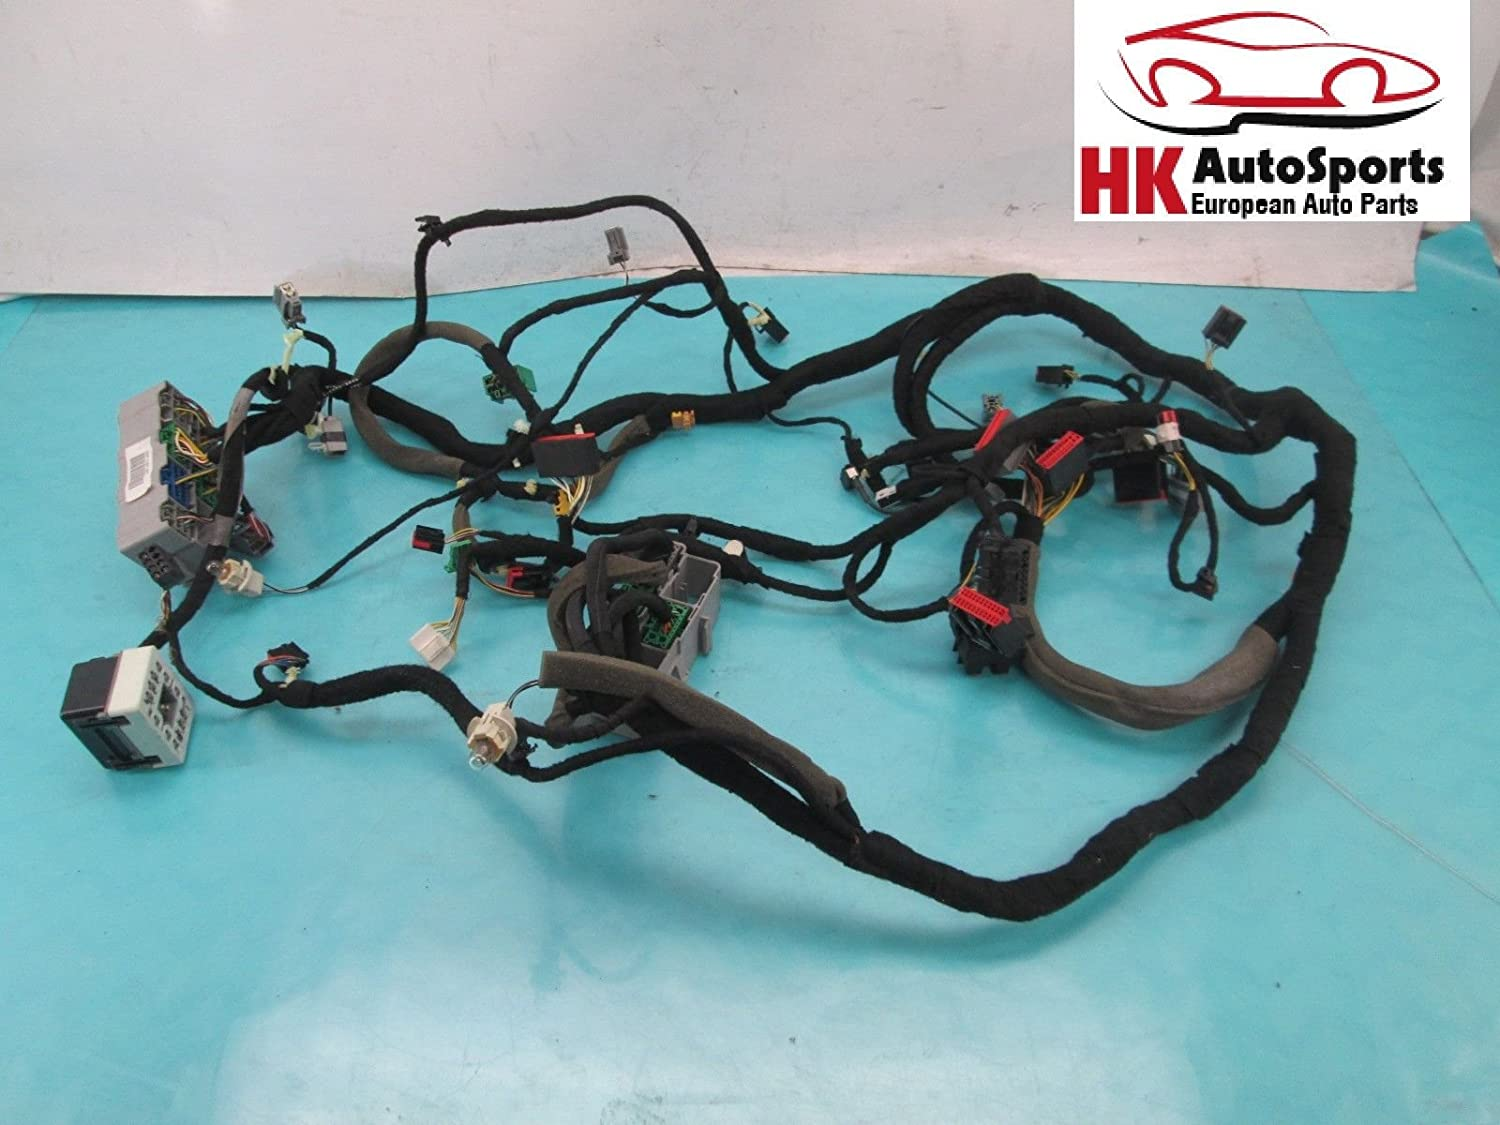 jaguar s-type ignition wire wiring harness at 2r8t-14401-bh oem 2003 2004  2005, spark plug wires - amazon canada  amazon.ca